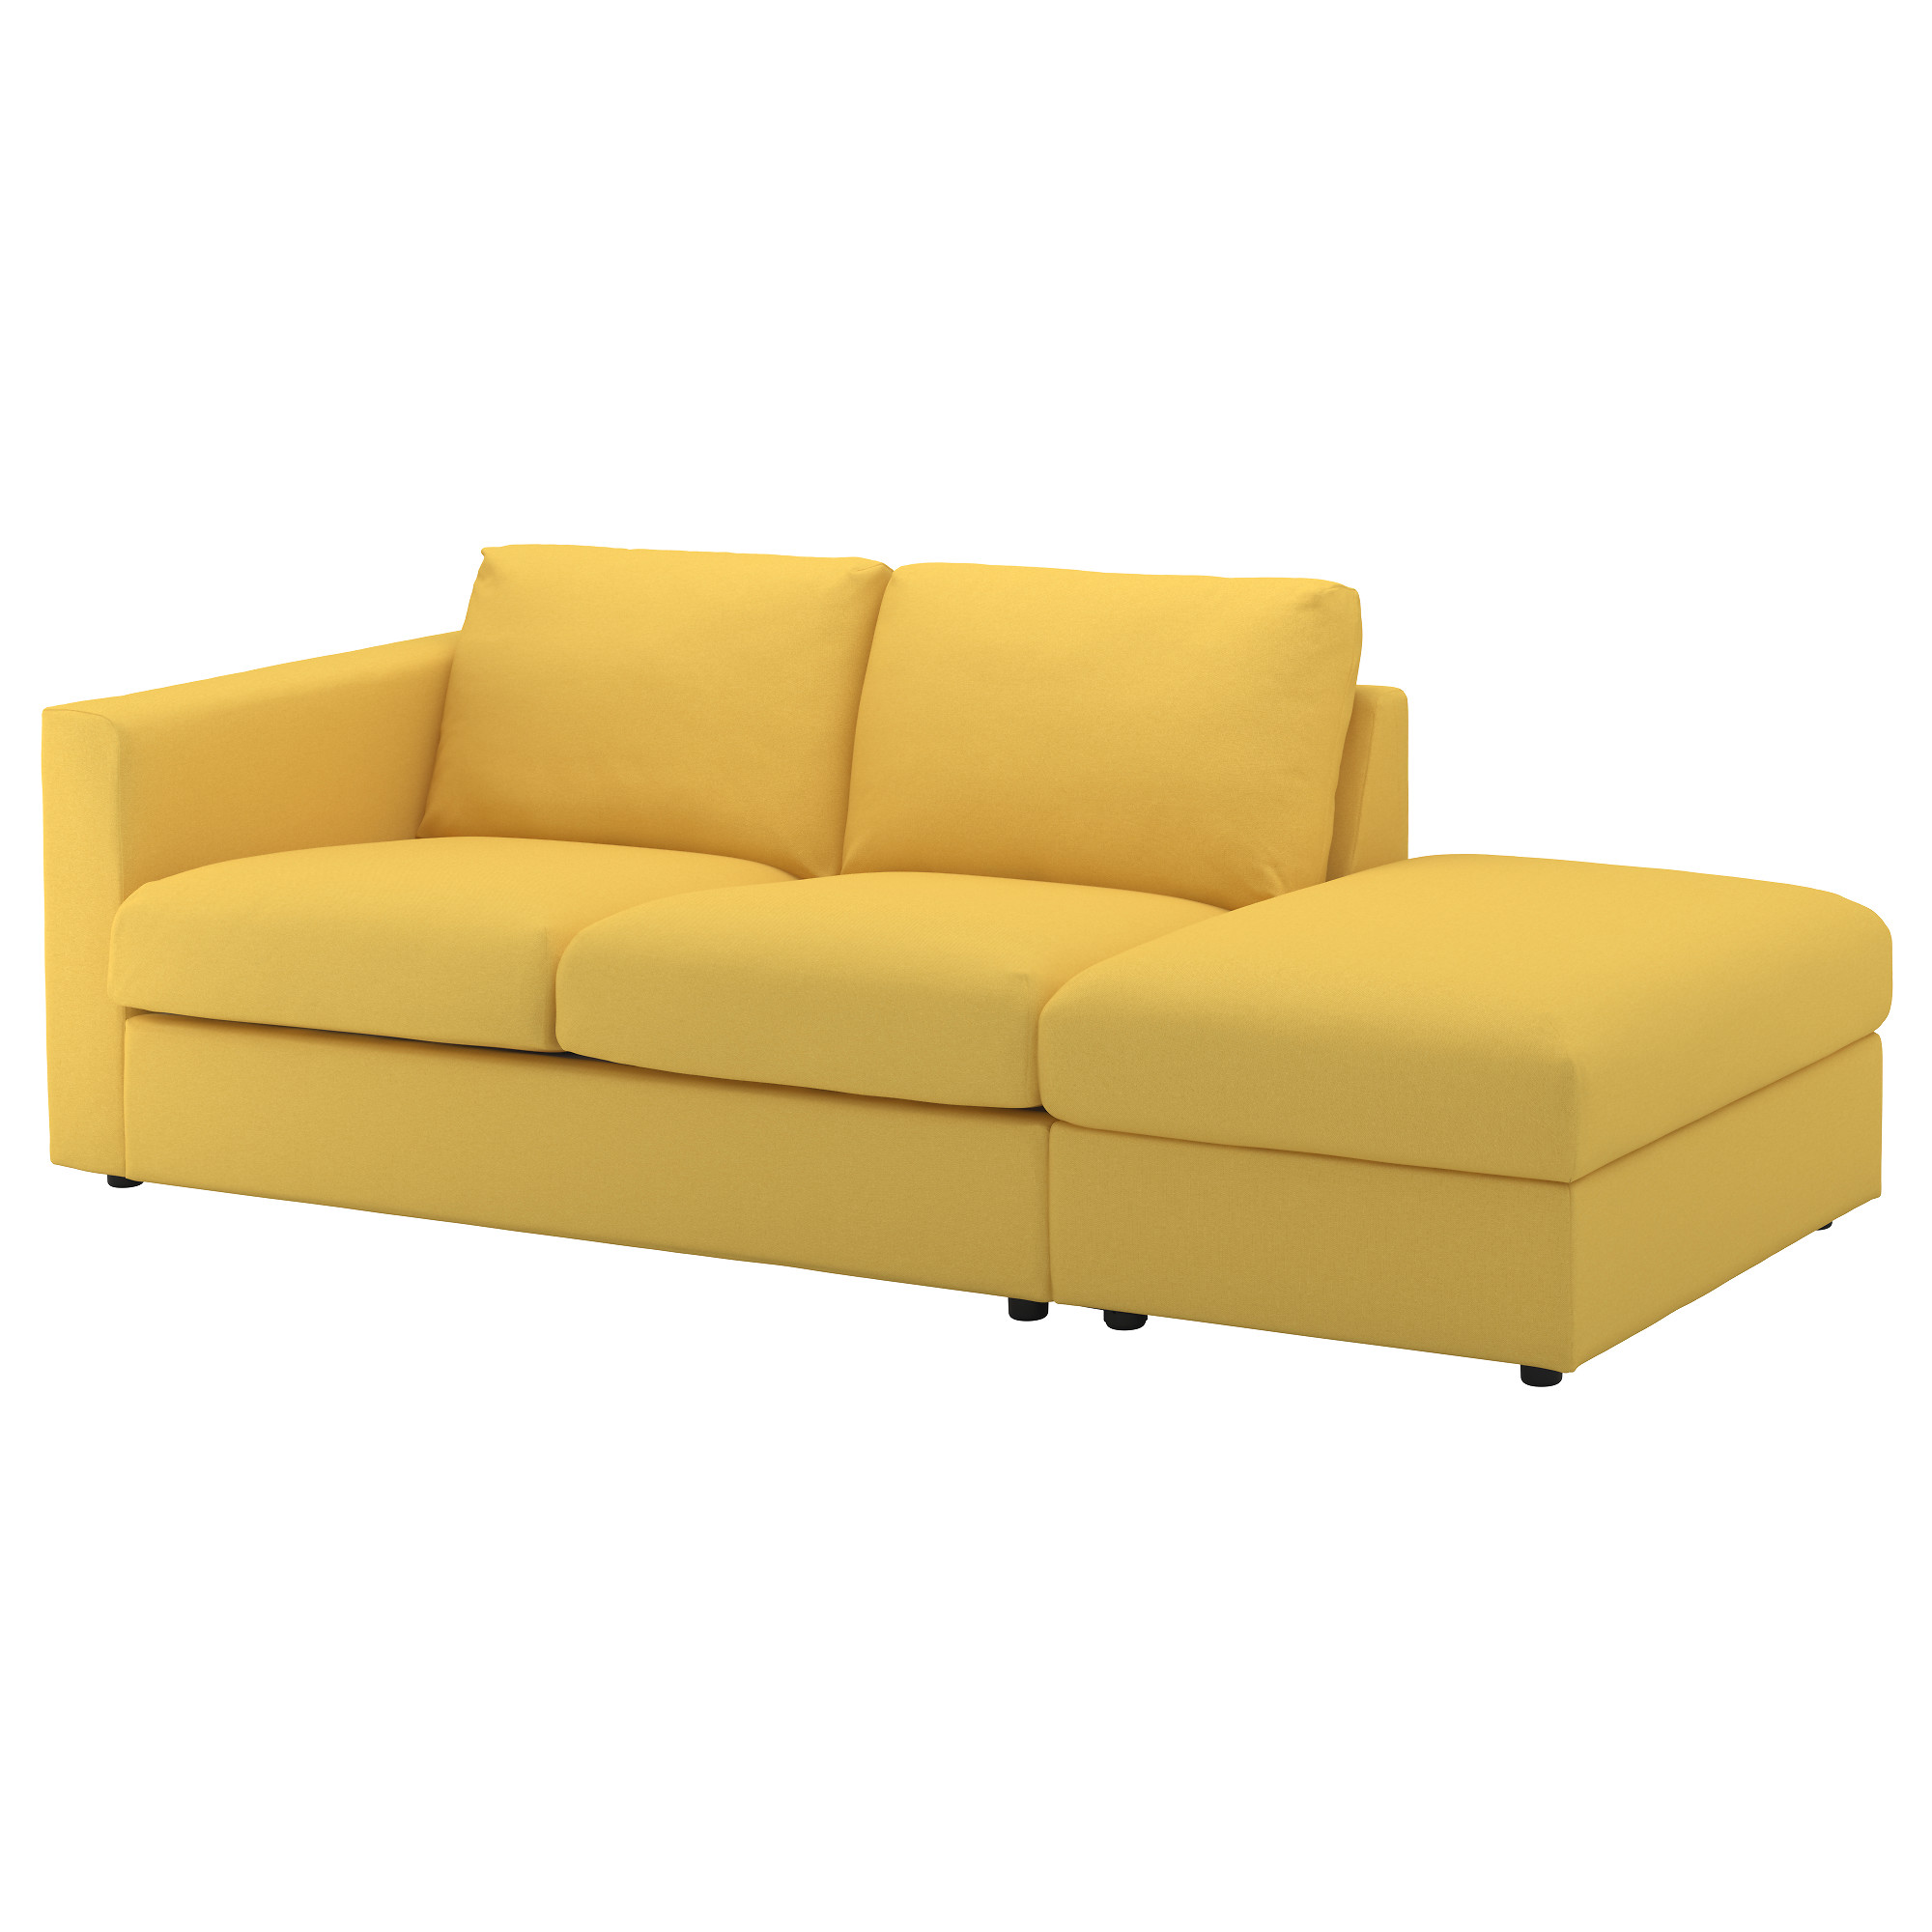 Couch modern  Fabric Sofas - Modern & Contemporary - IKEA